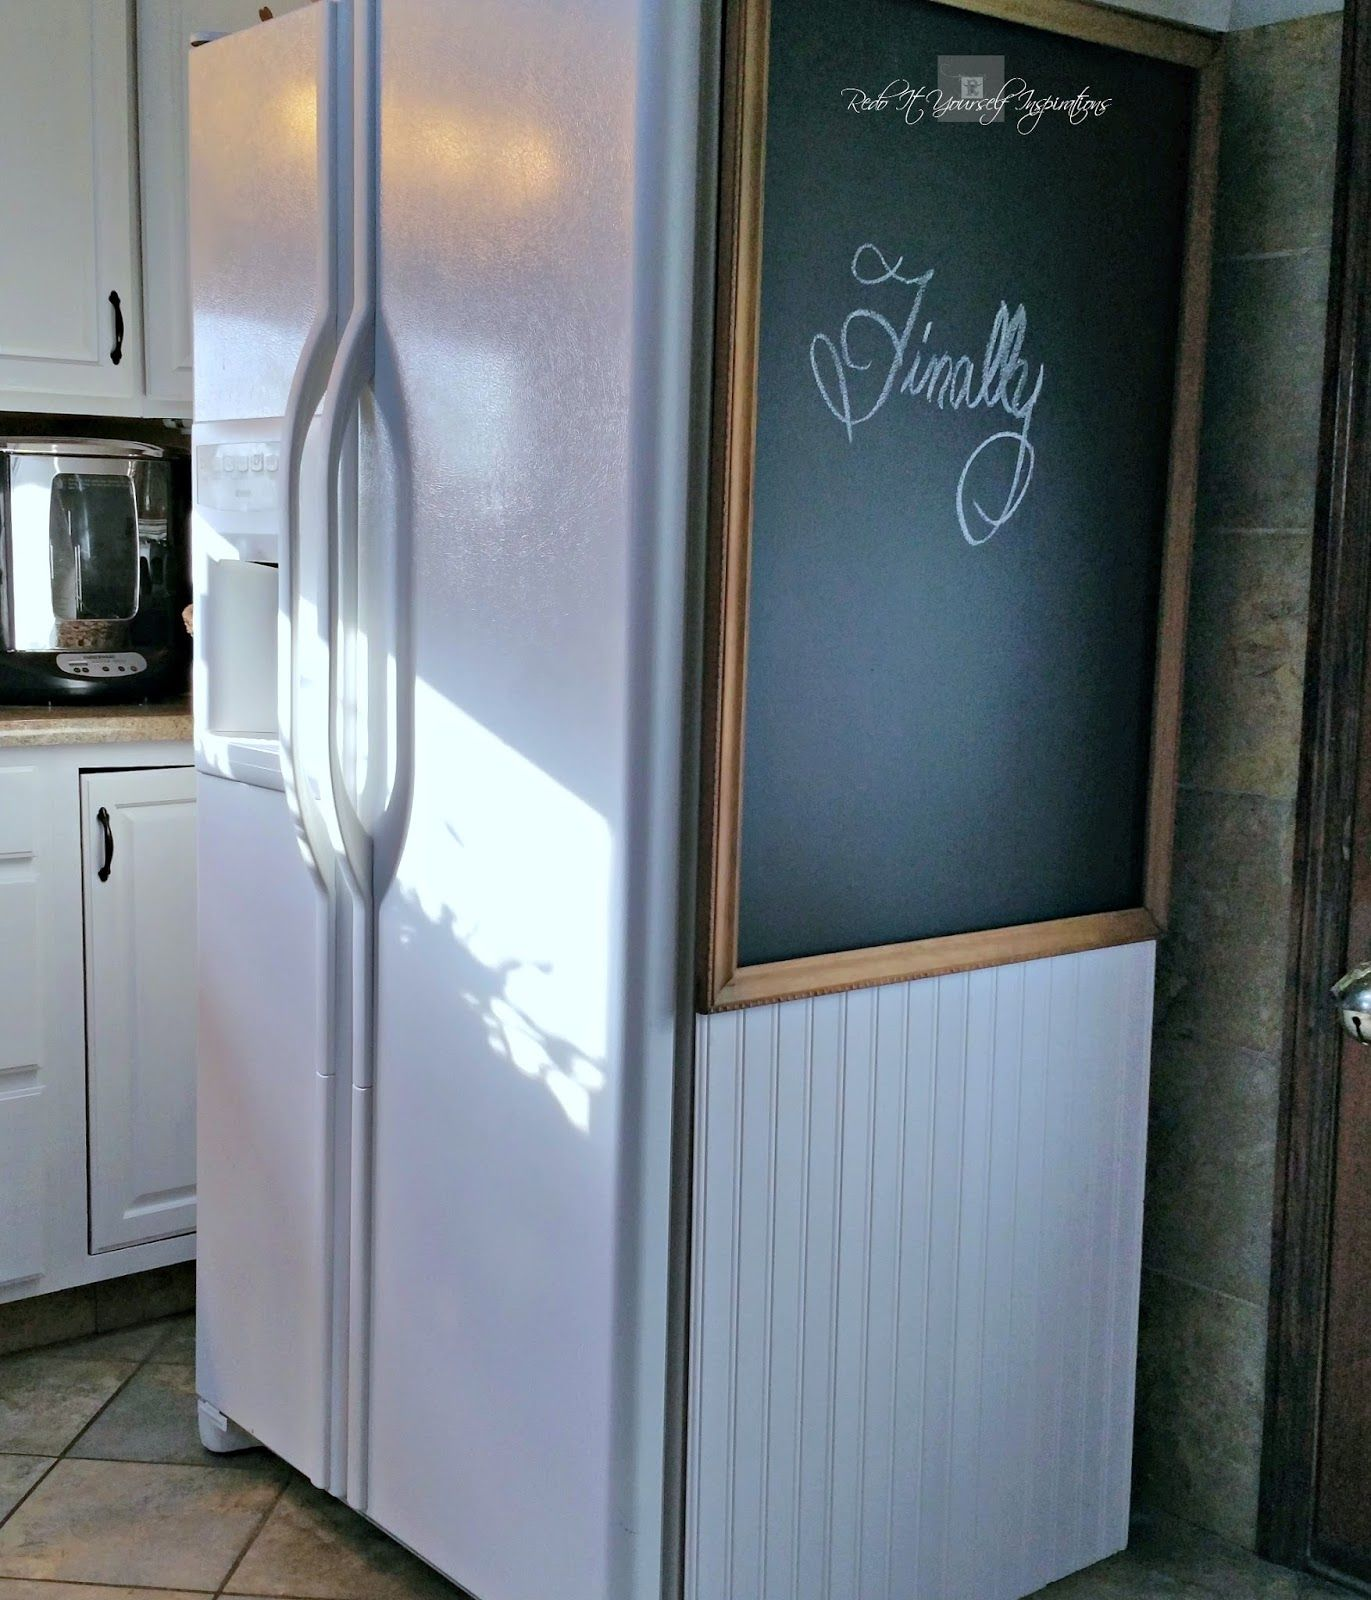 A Refrigerator Cover Up Redo It Yourself Inspirations A Refrigerator Cover Up Refrigerator Makeover Refrigerator Covers Fridge Makeover